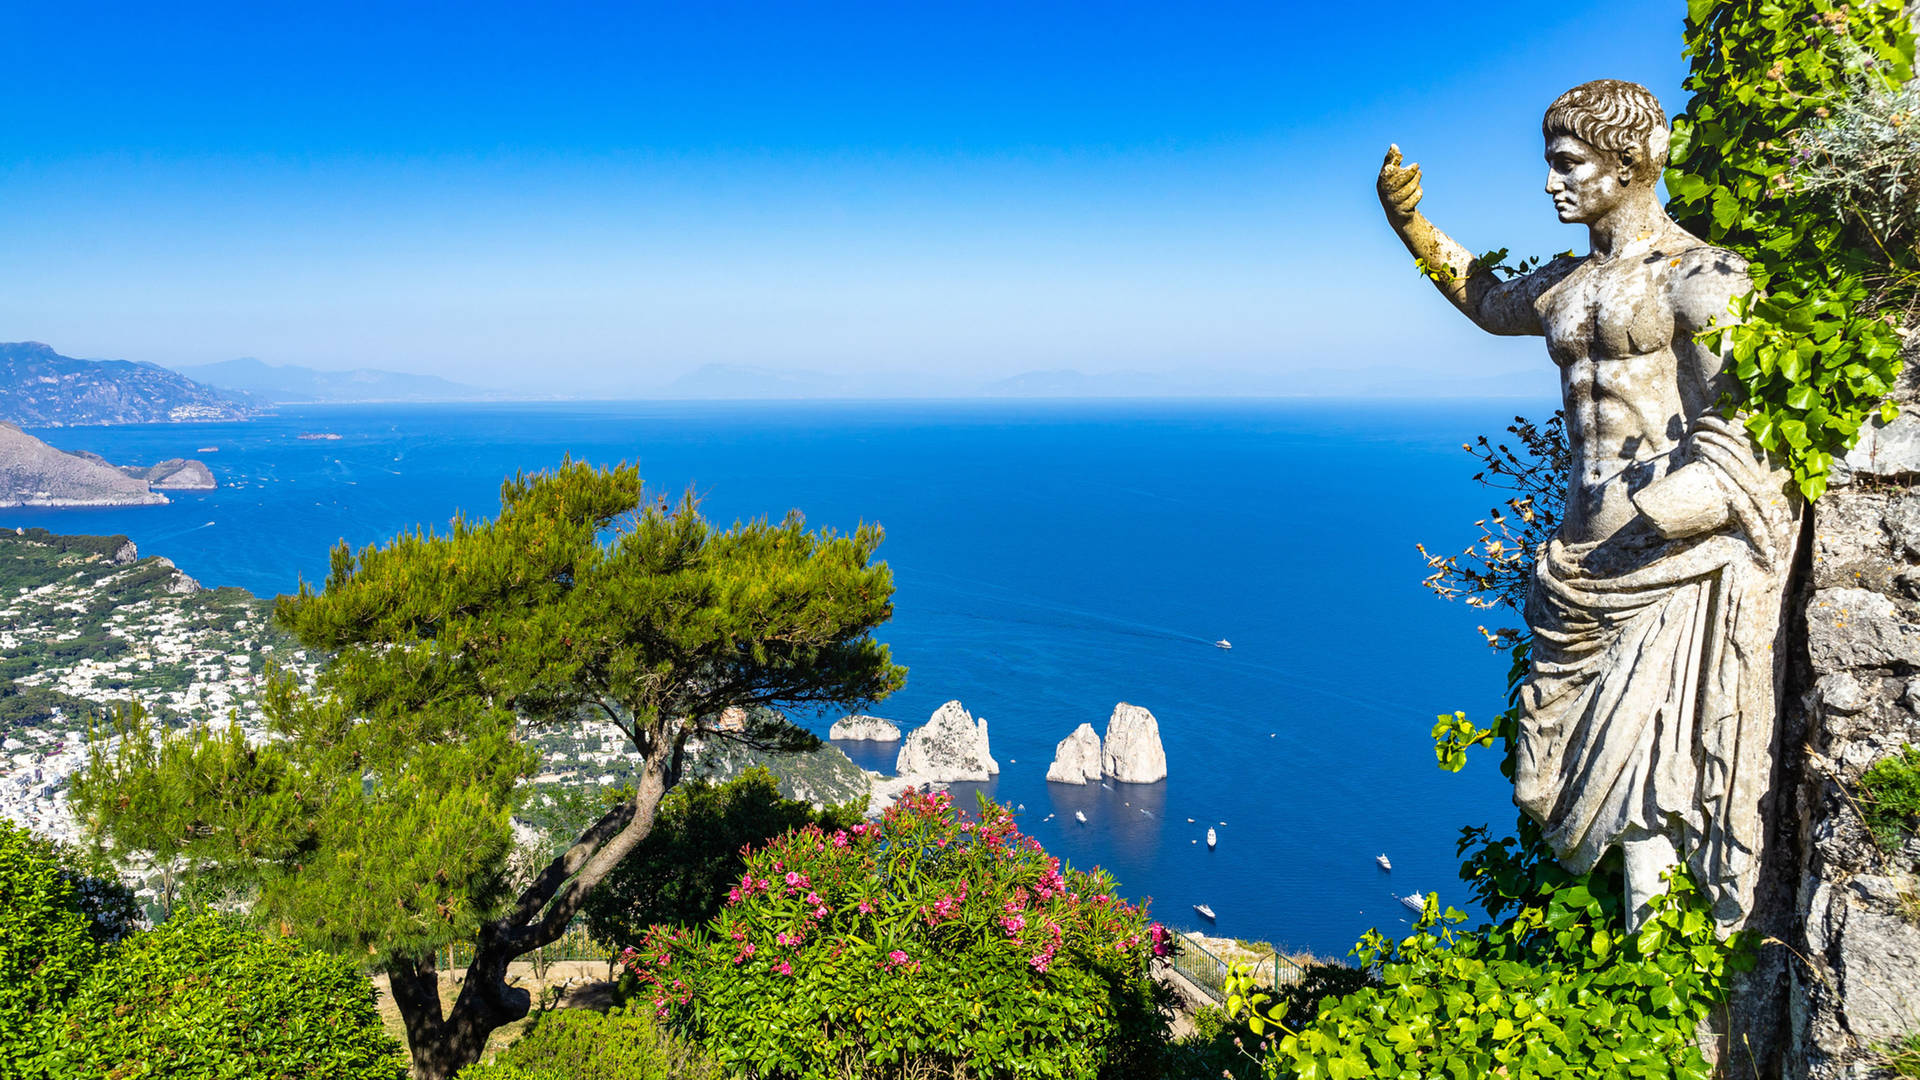 View of the sea from Anacapri